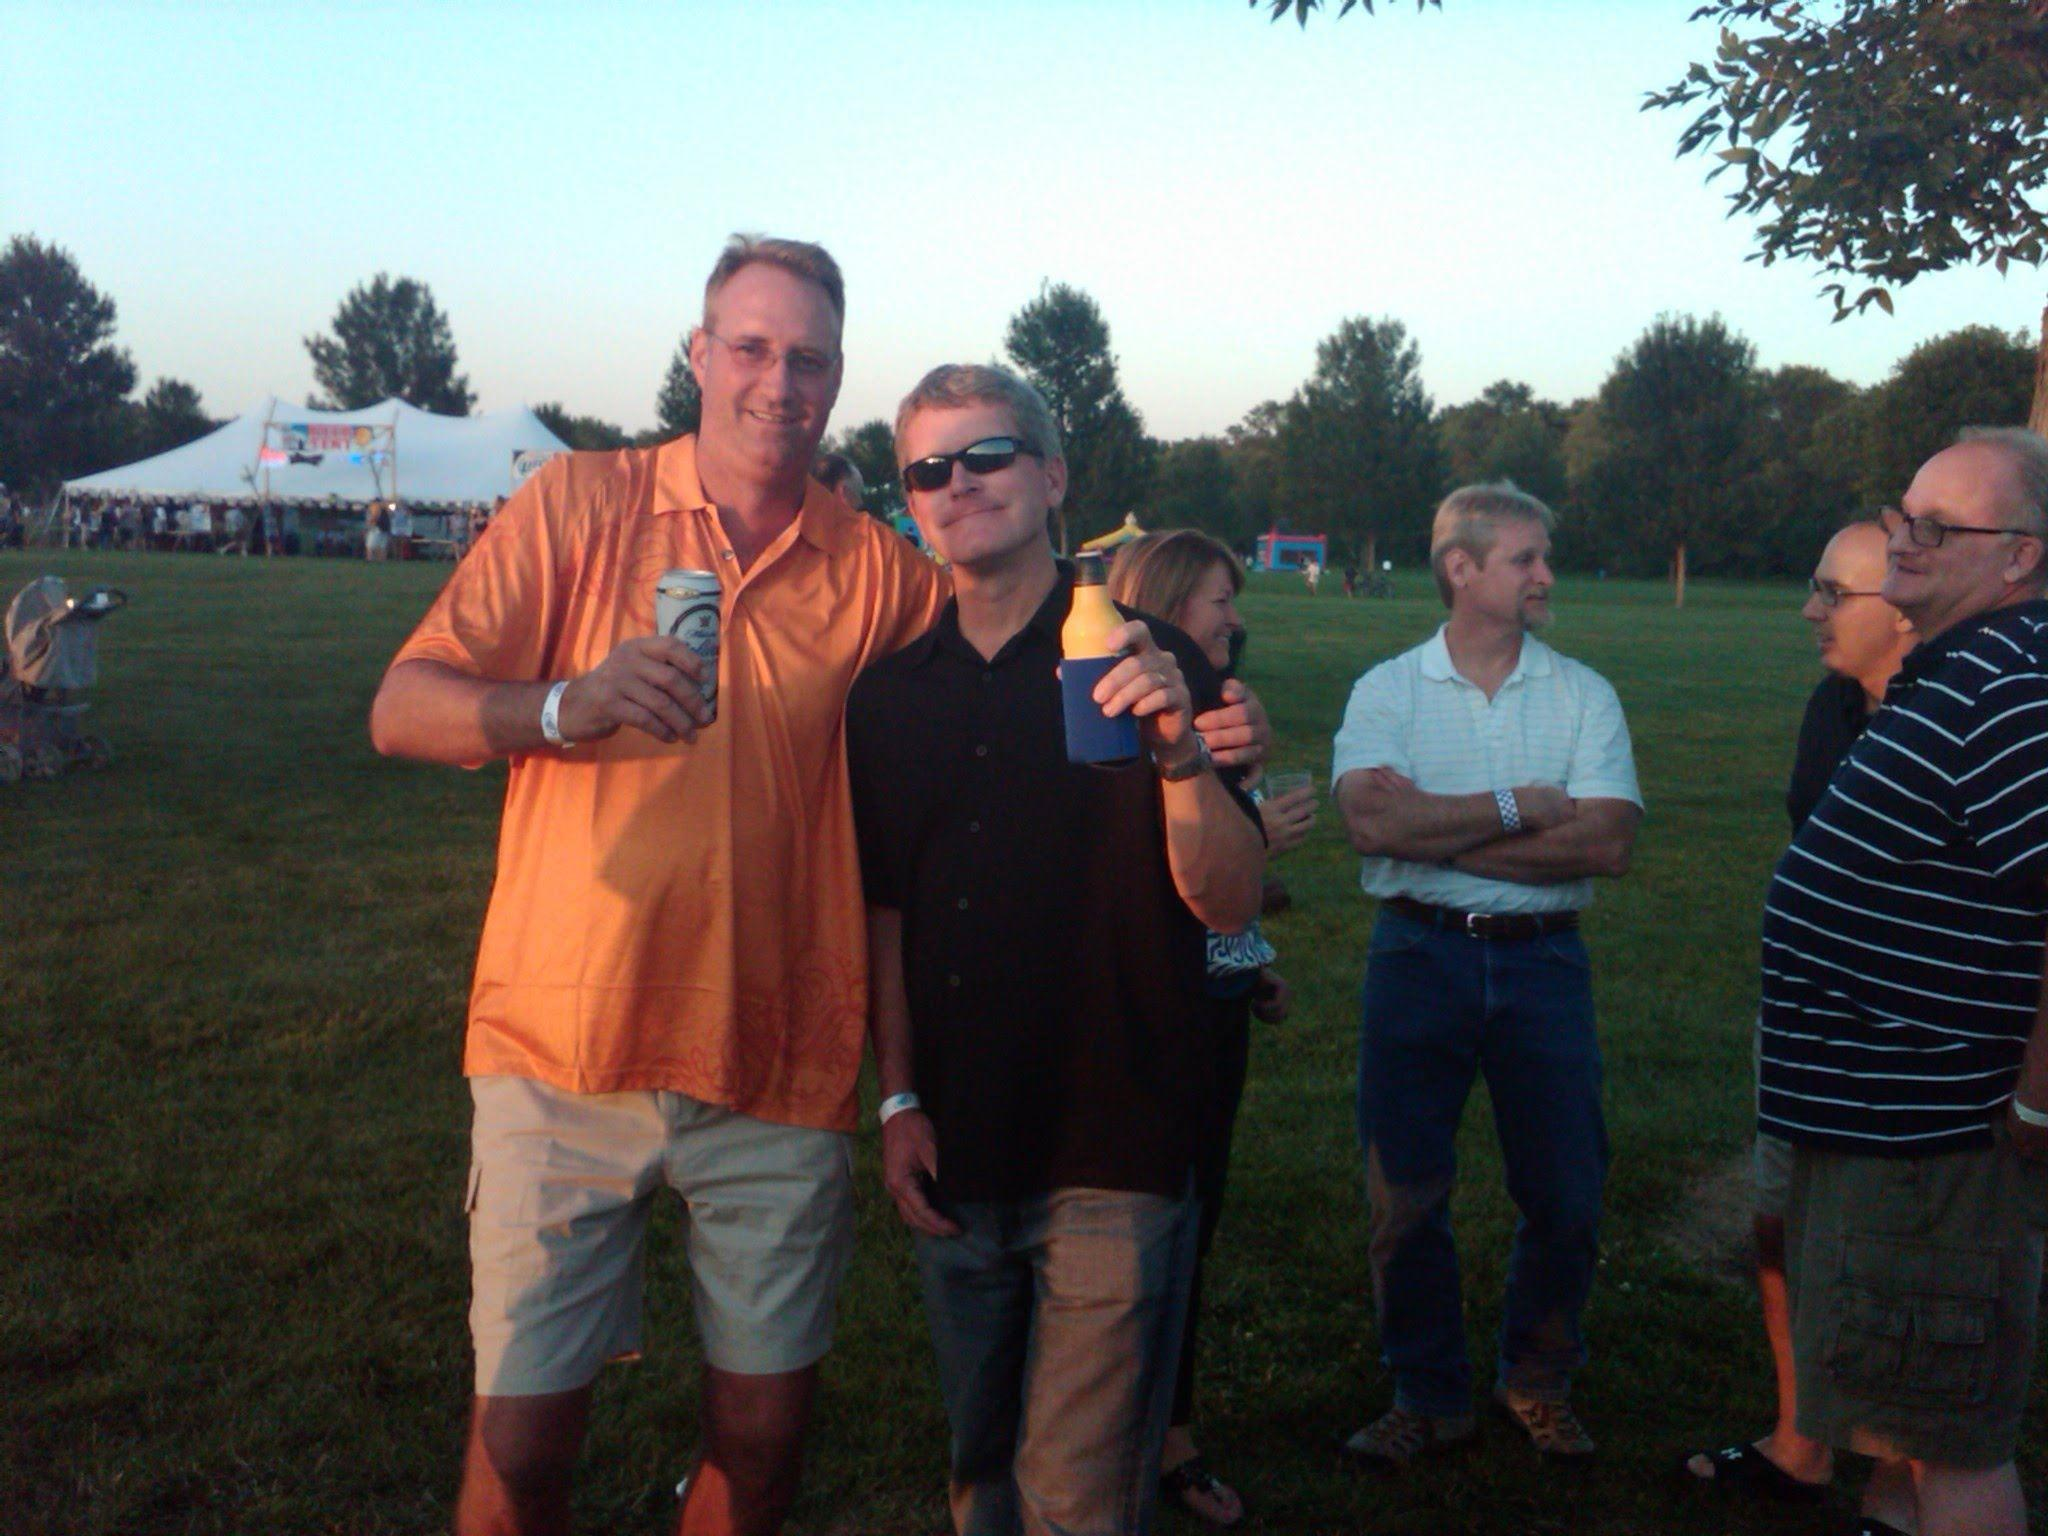 (archive) LHS Class of 1980 40th Class Reunion and Golf Outing